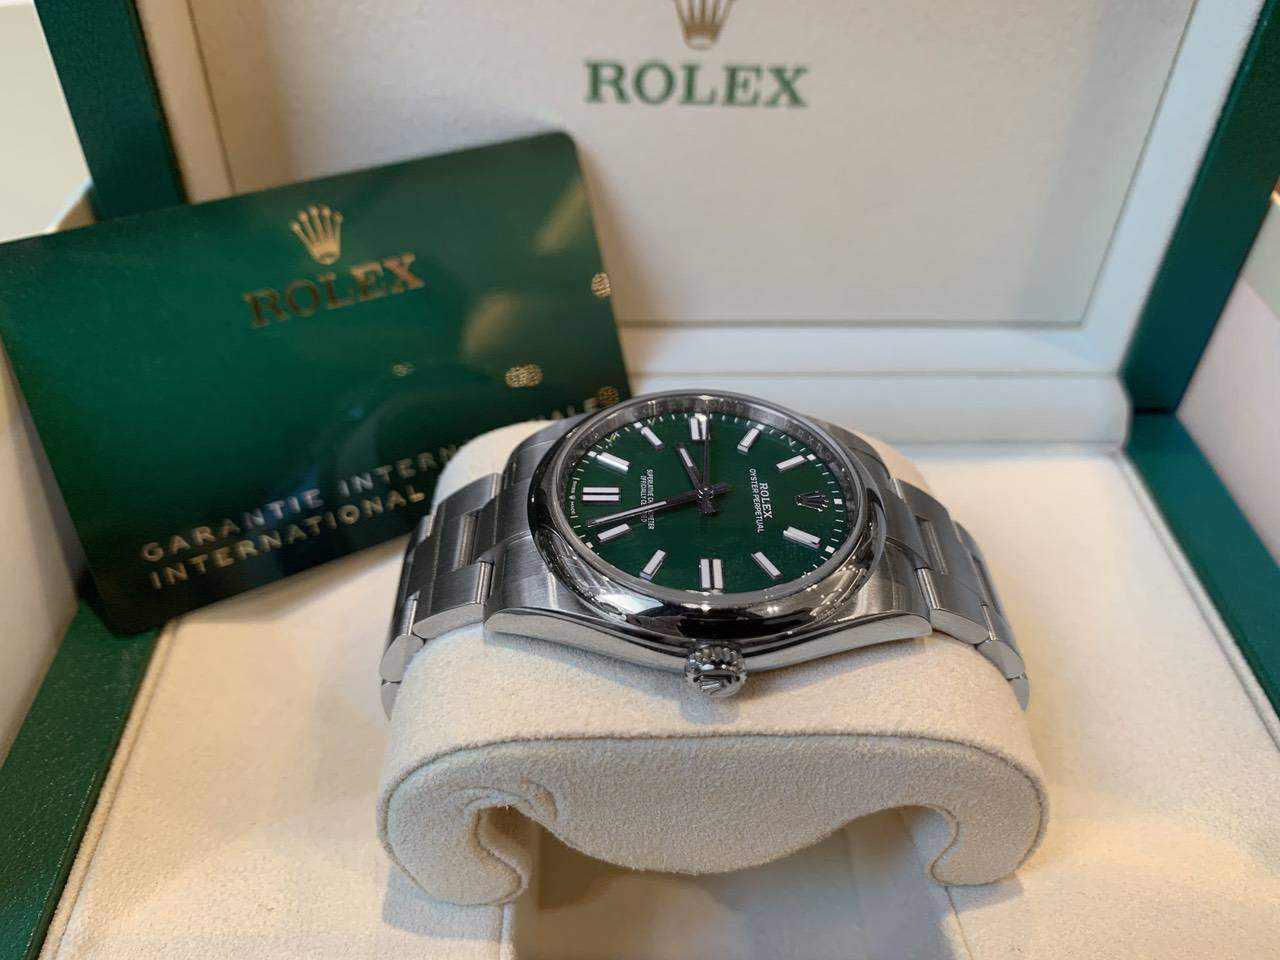 Rolex-Oyster-Perpetual-Green-124300-3